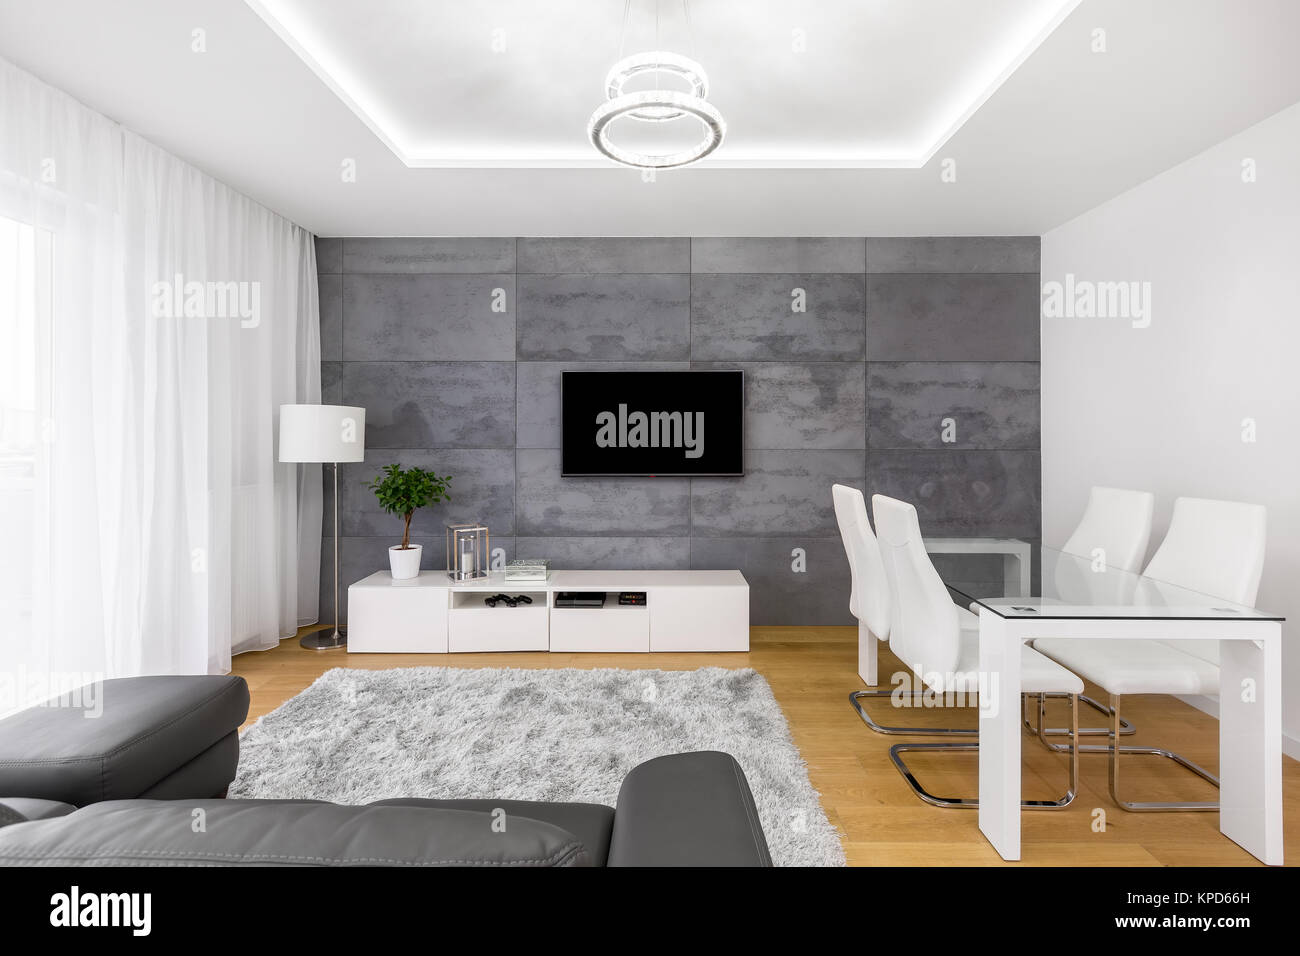 Bright Interior Of Living Room With Dining Space And Tv Screen Stock Photo Alamy